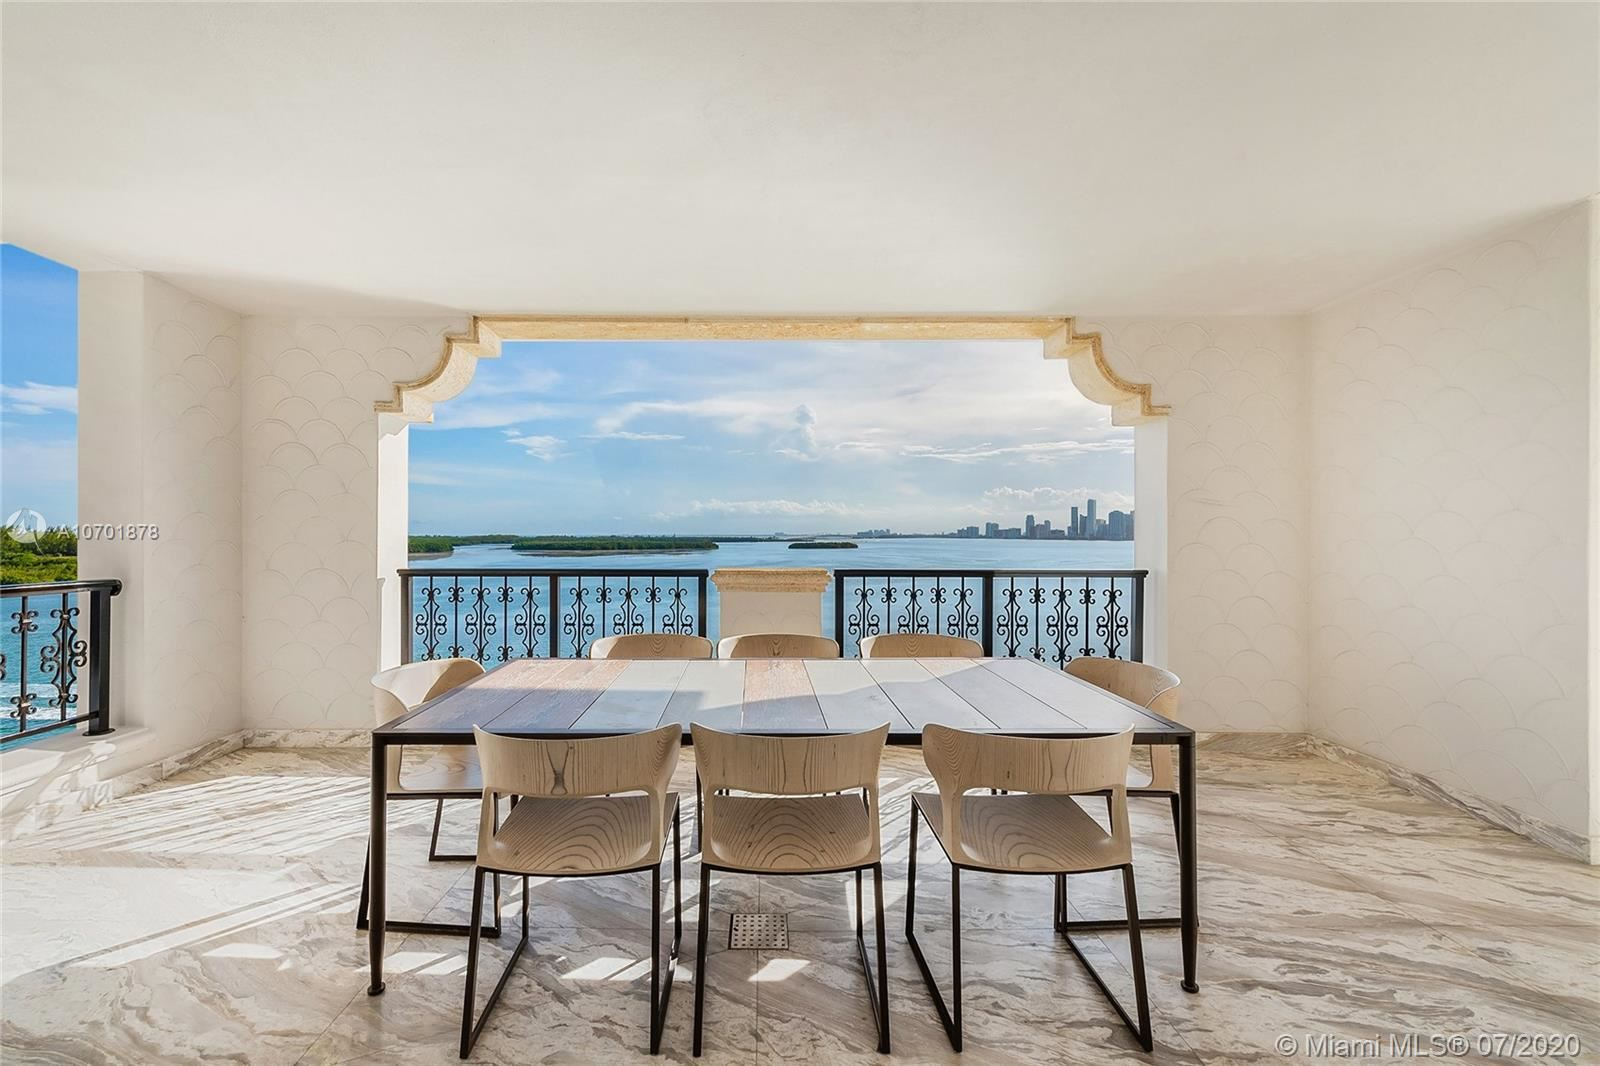 Photo 25 of Listing MLS a10701878 in 5292 Fisher Island Dr #5292 Miami FL 33109